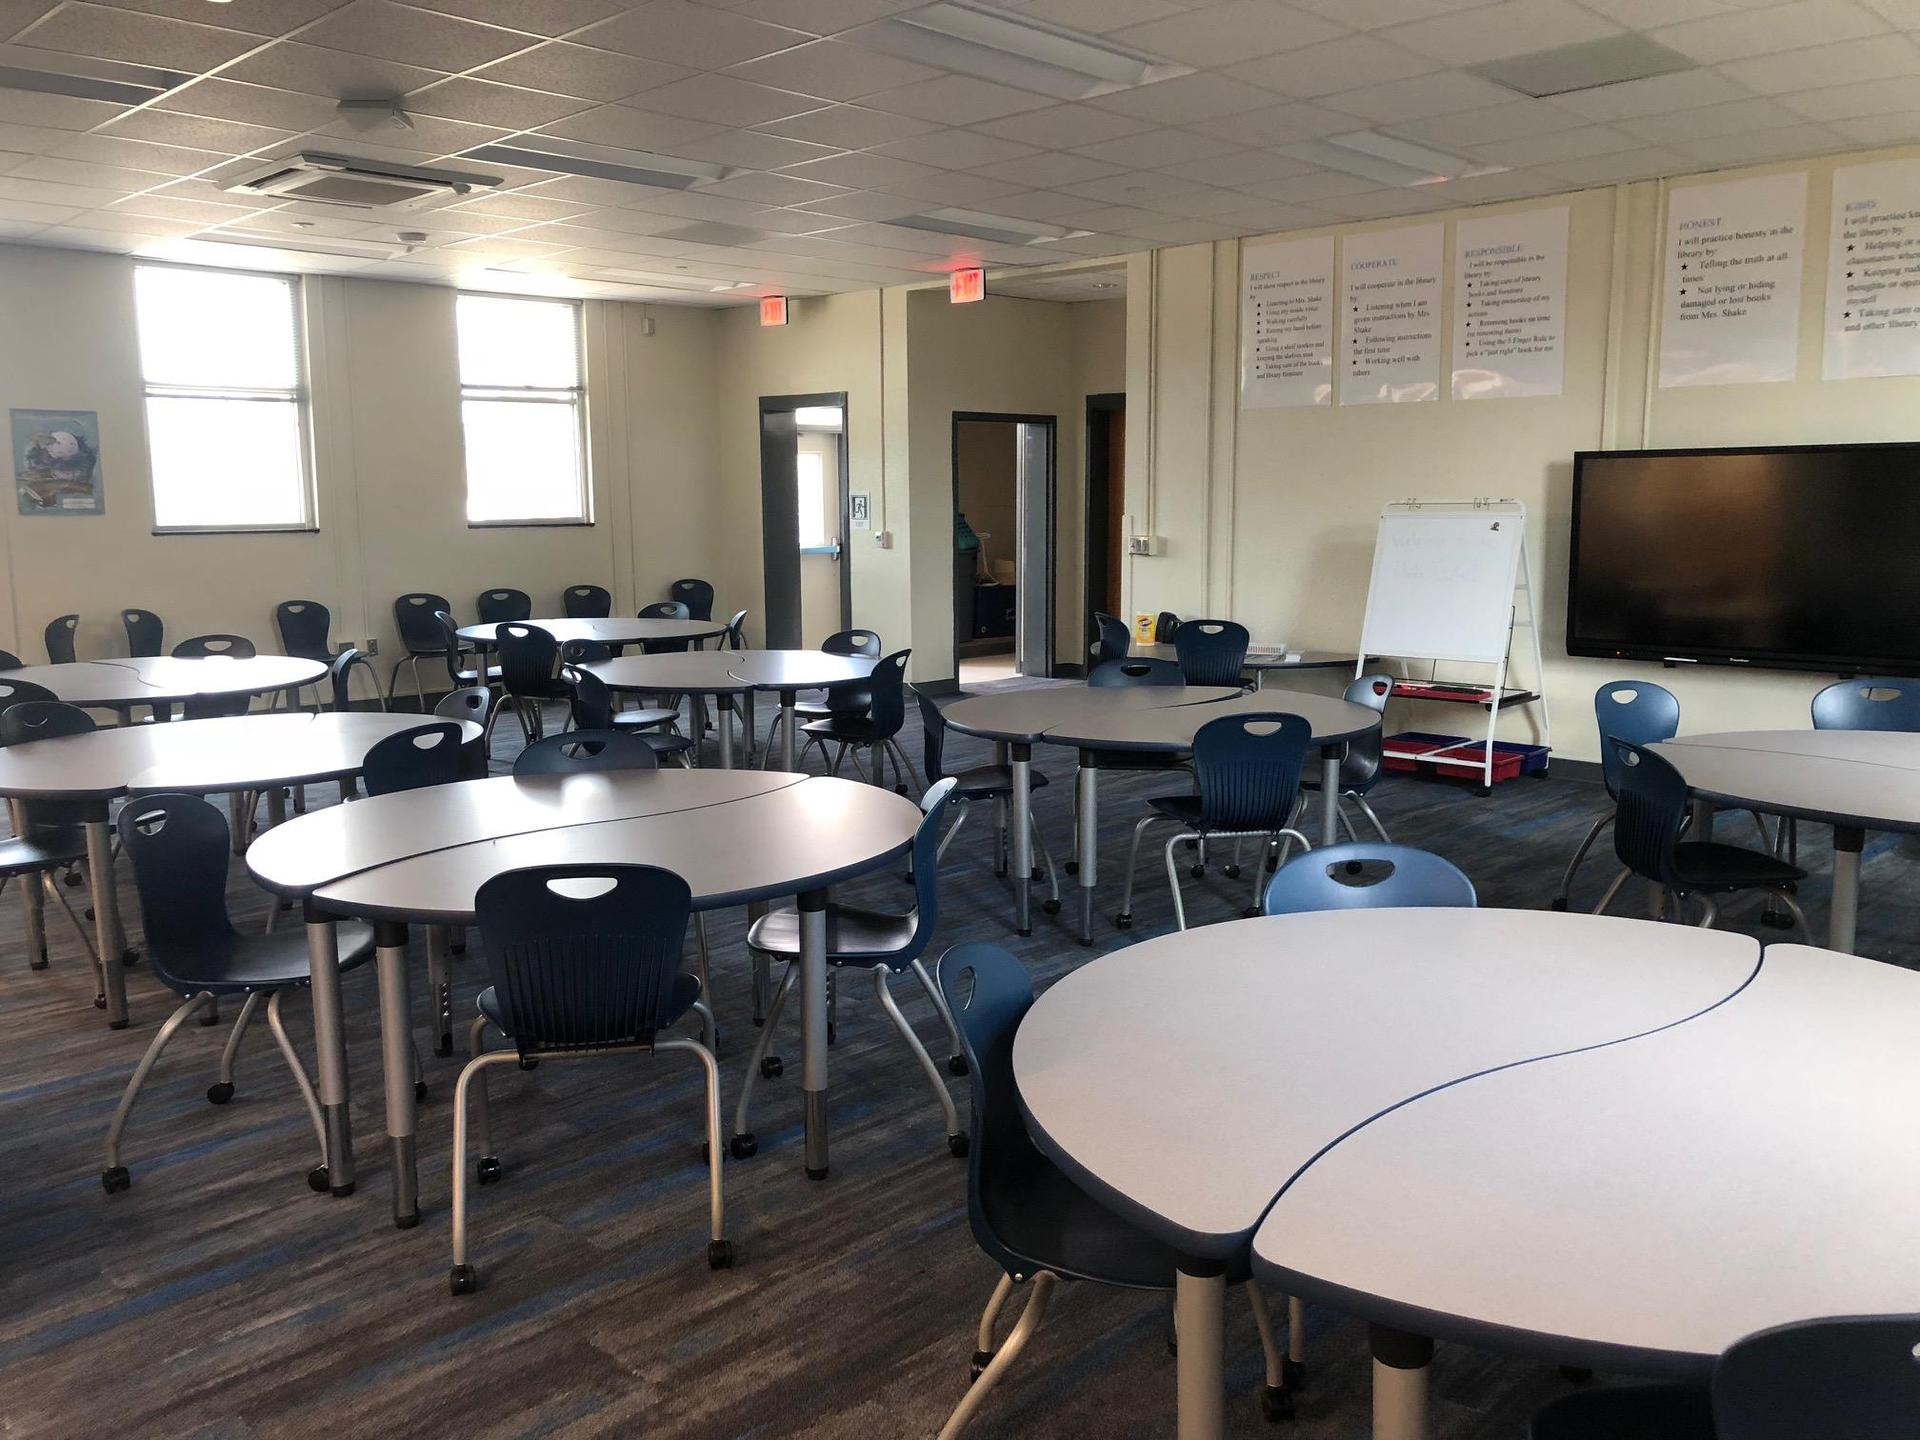 New tables and chairs for class seating in the new Media Center at Springdale Elementary